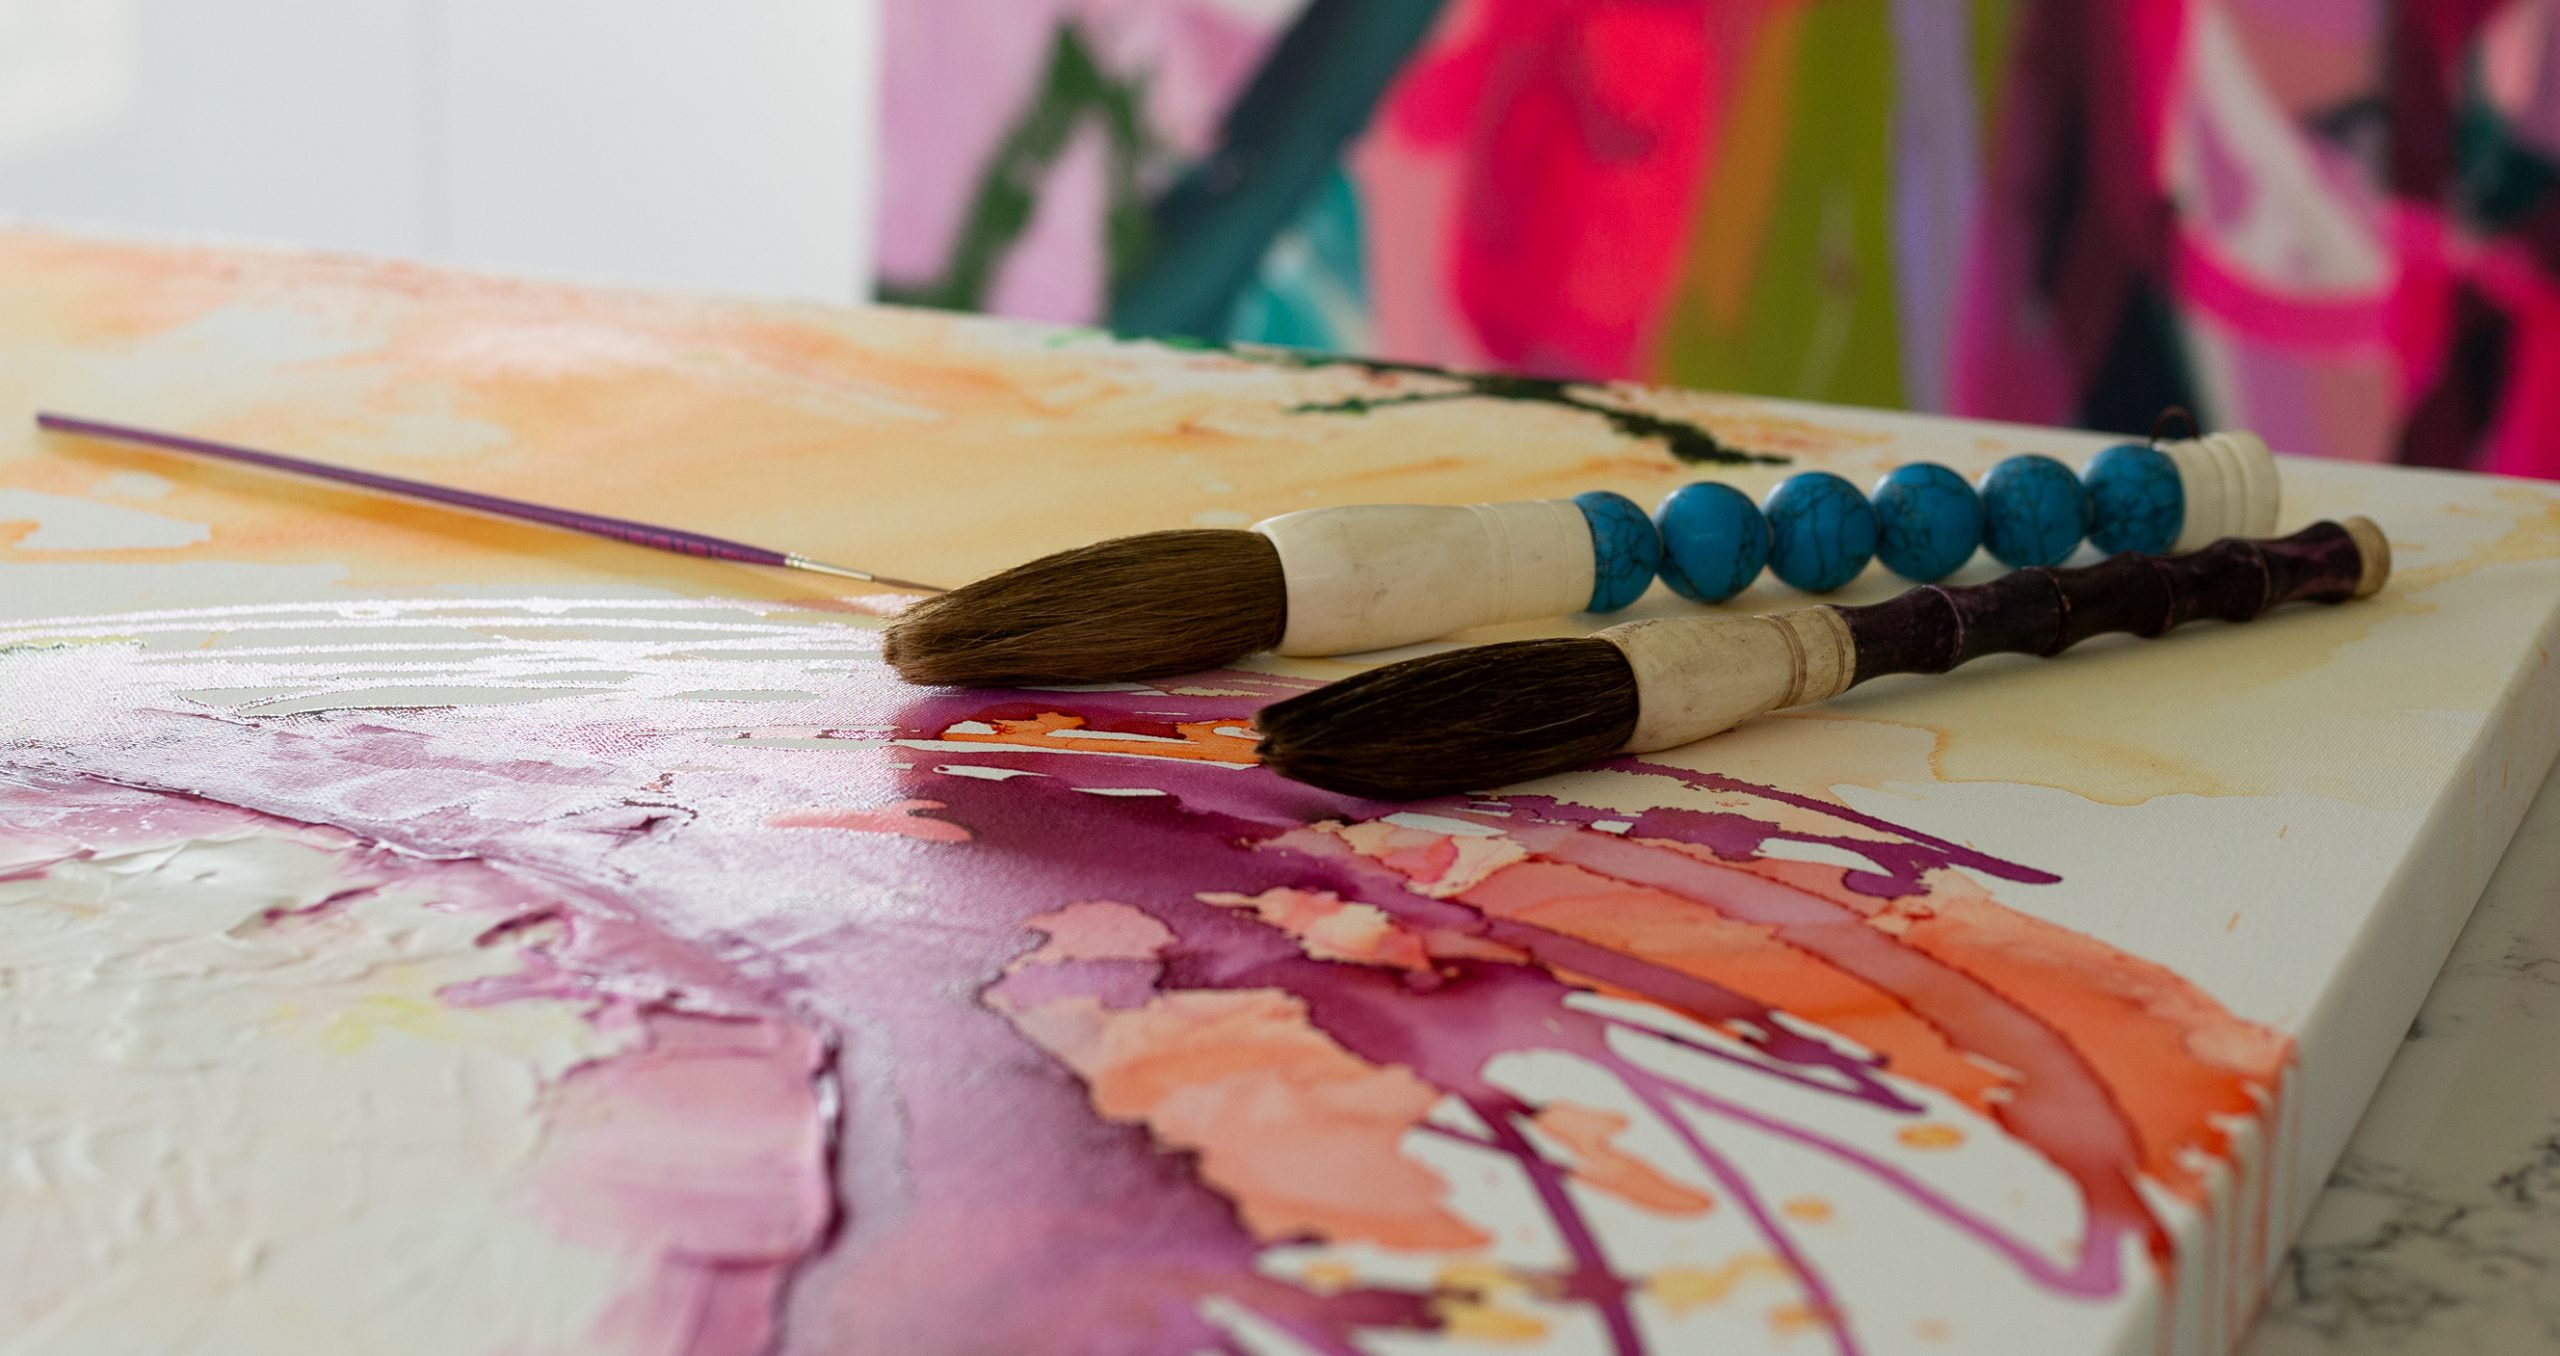 Big paintbrushes the Zen by Pro Hart Swagger